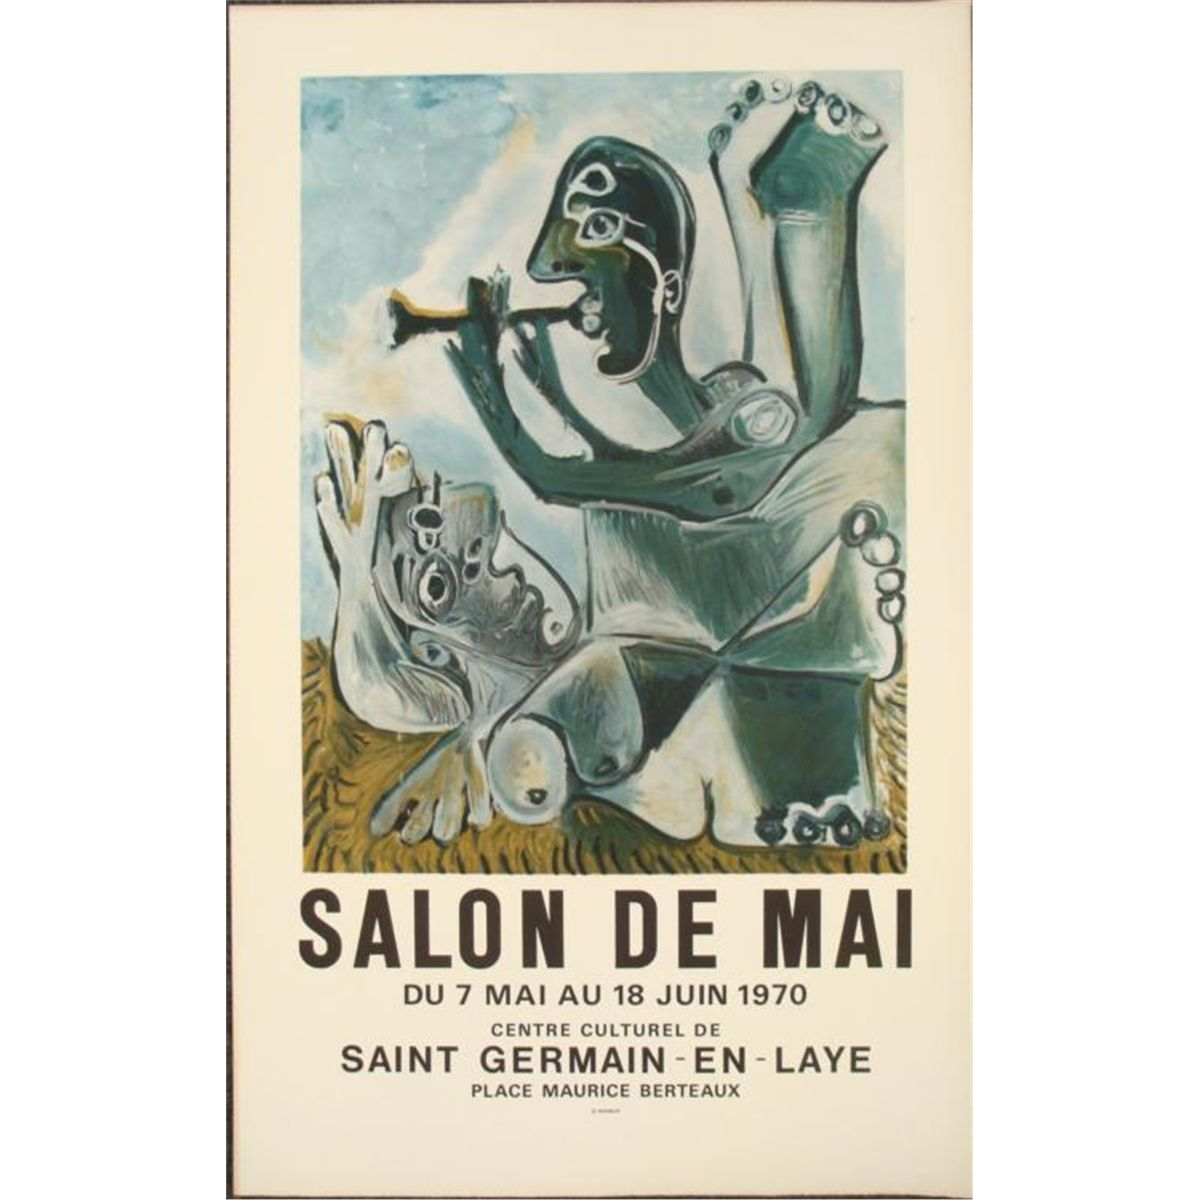 Salon De The A Paris Pablo Picasso Salon De Mai Paris Tradeshow Art Print